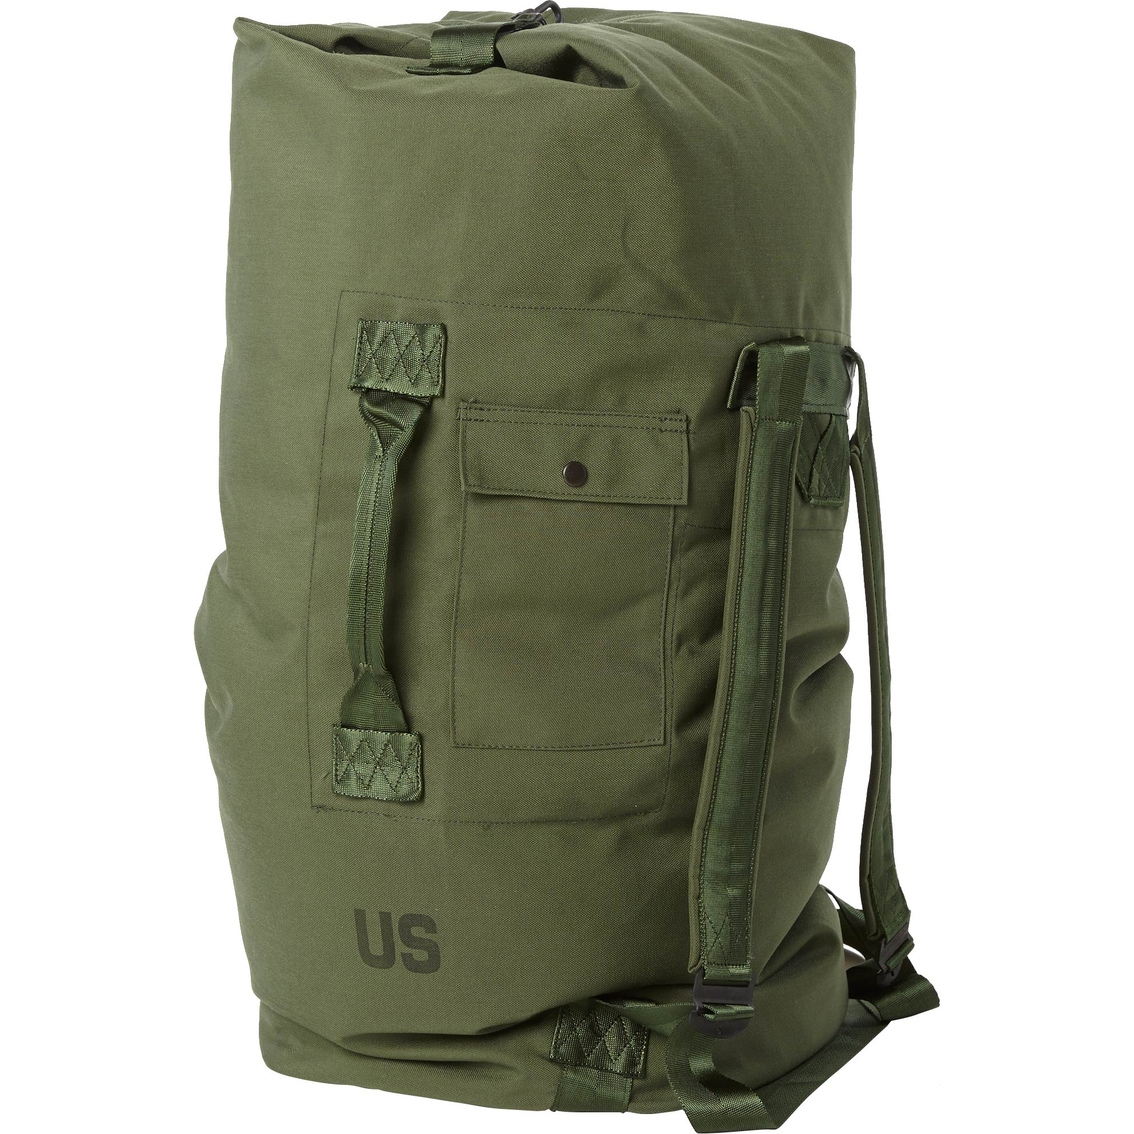 Dlats Issued Duffel Bag Od Green Bags Packs Amp Pouches Military Shop The Exchange